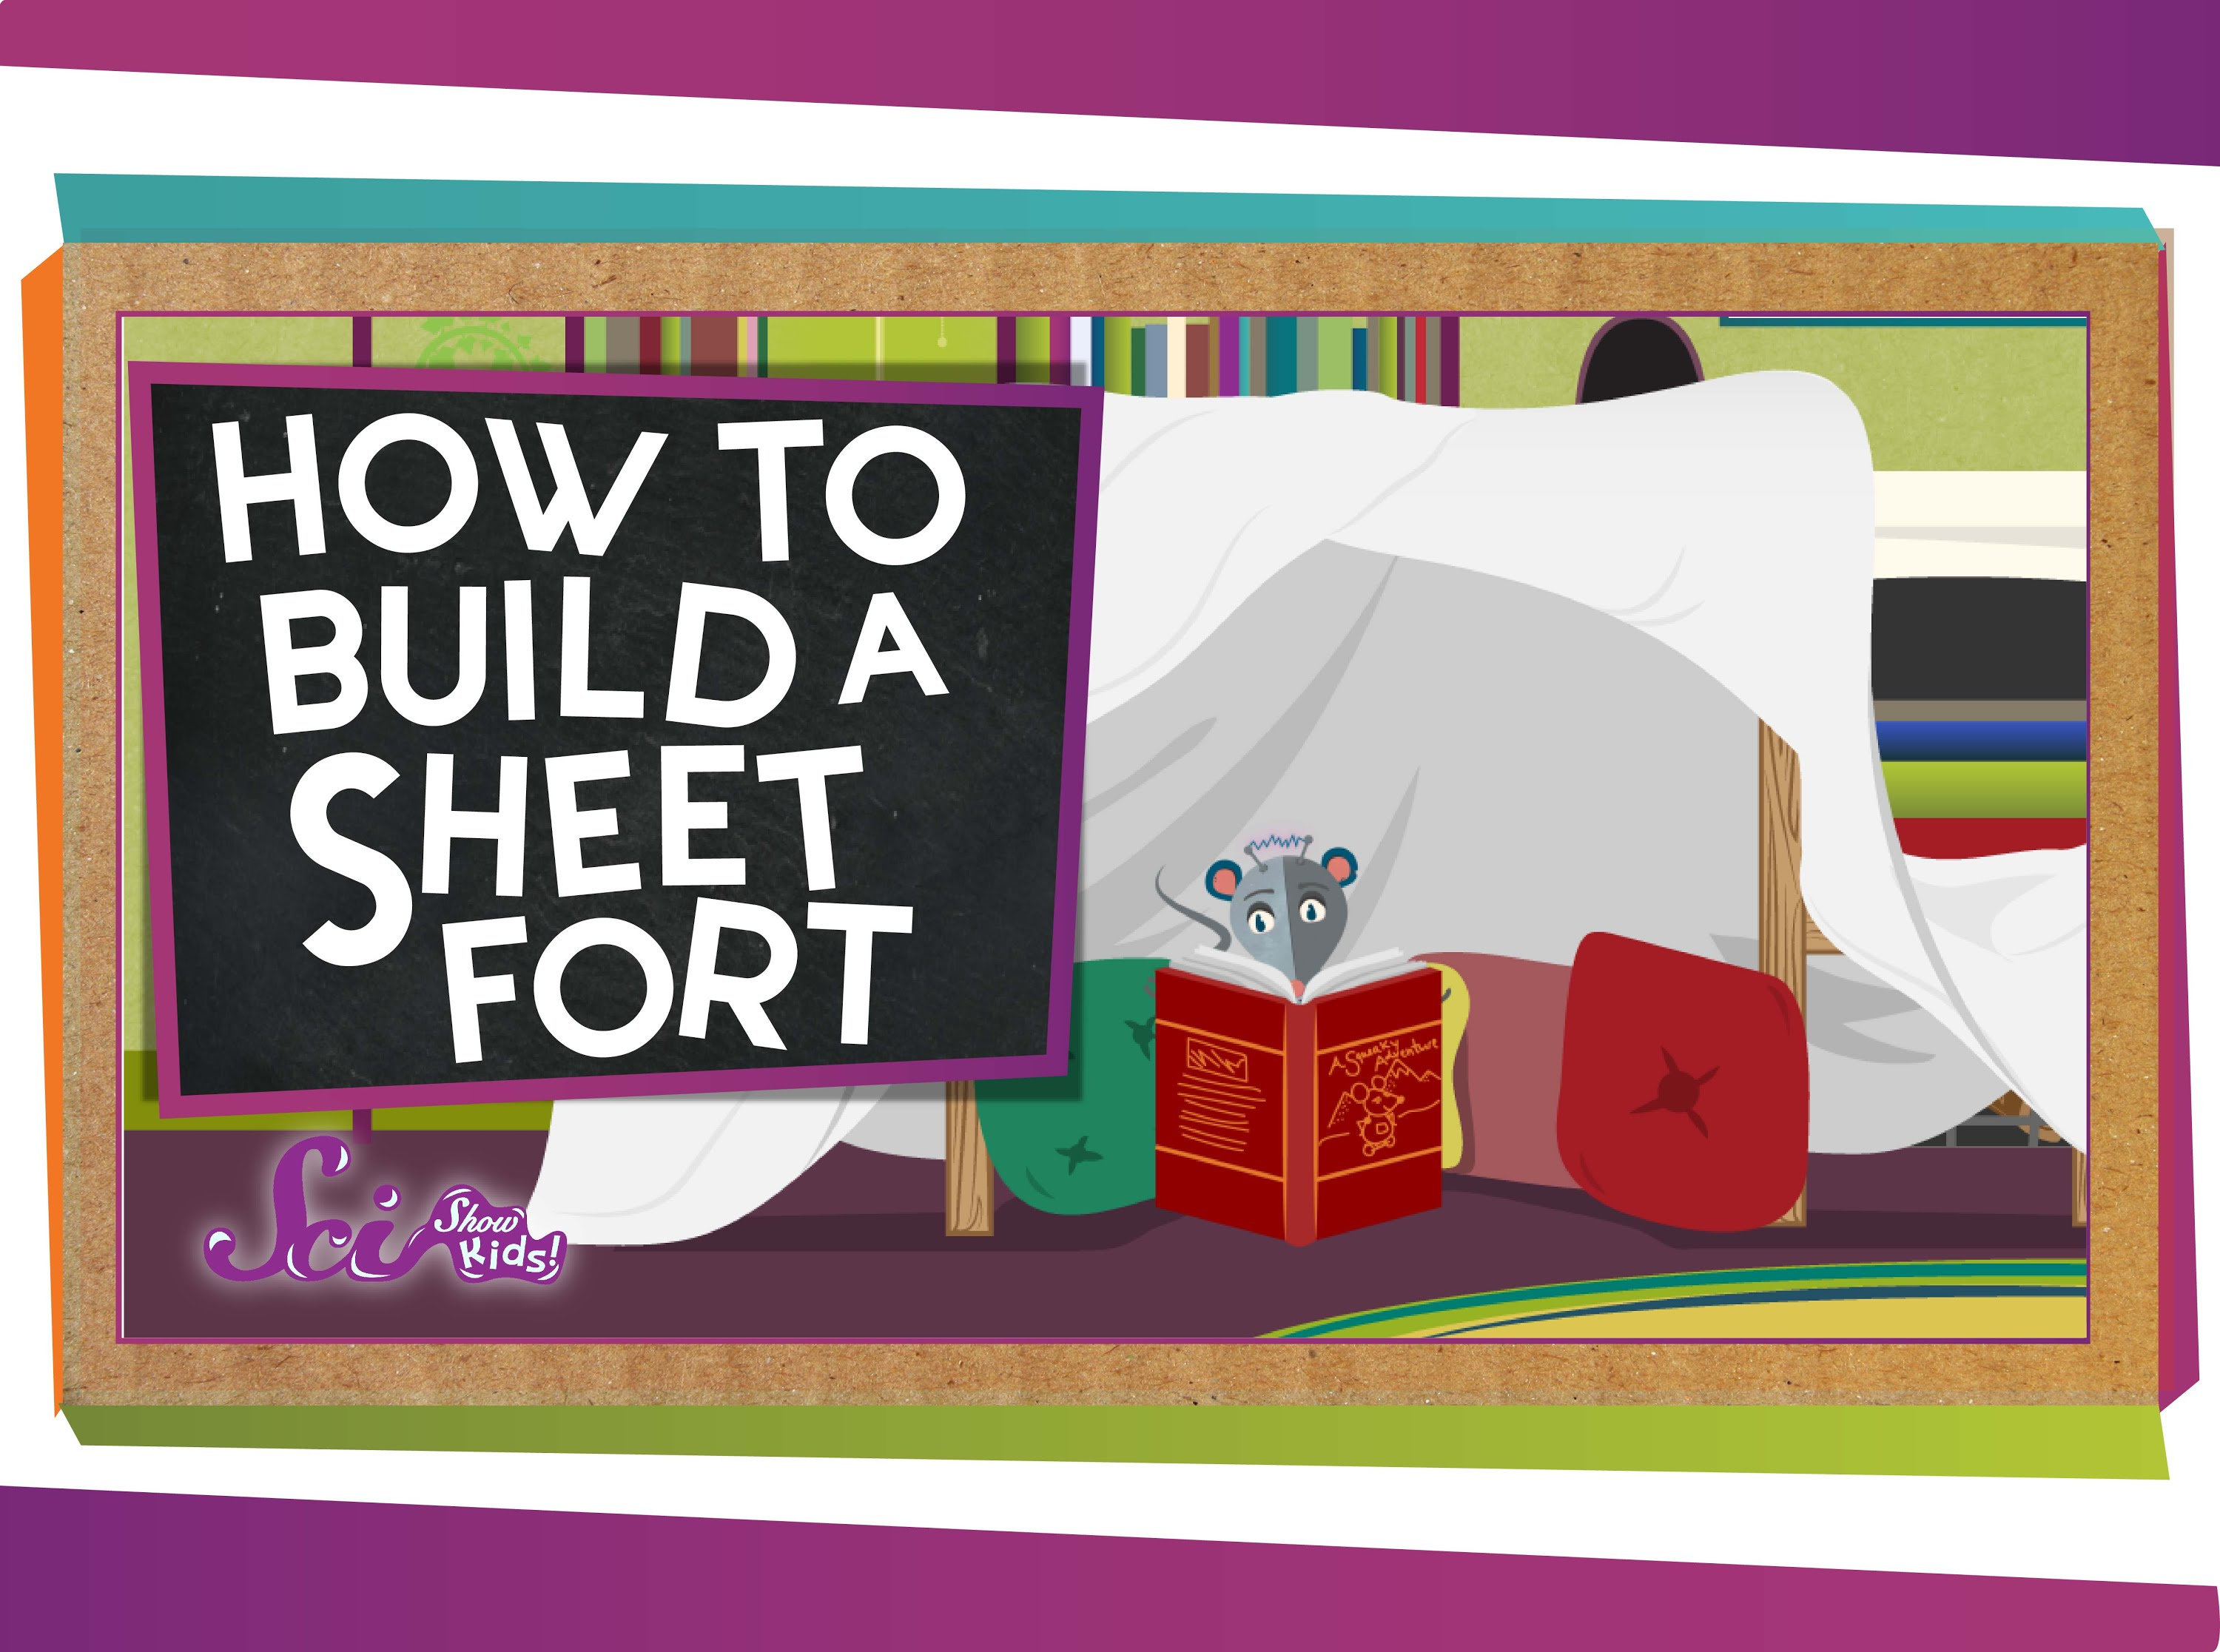 Fort clipart sheet A  Build YouTube To